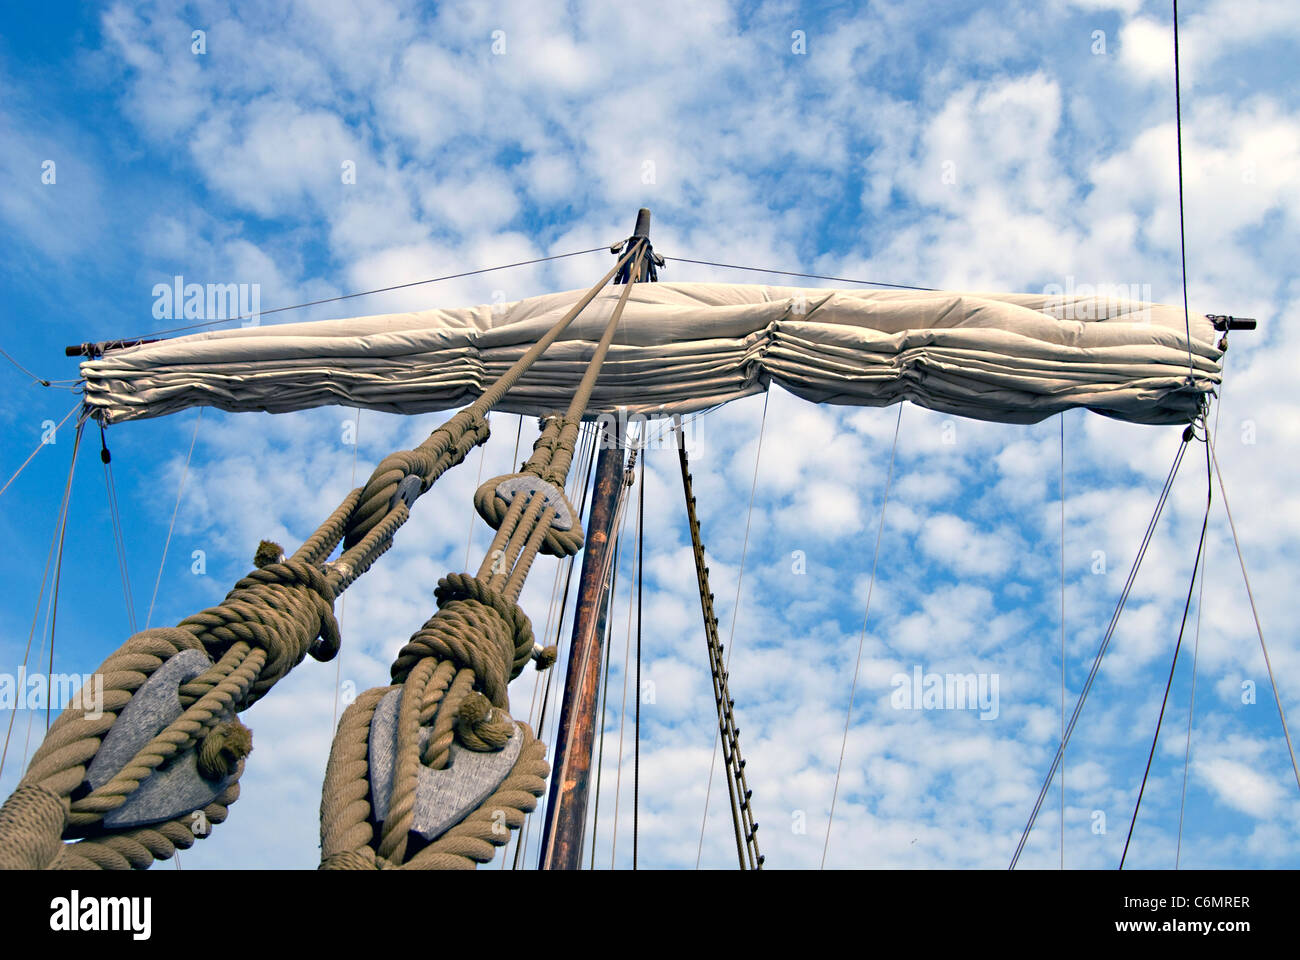 Mainsail on a medieval cog, blue sky and clouds in the background - Stock Image